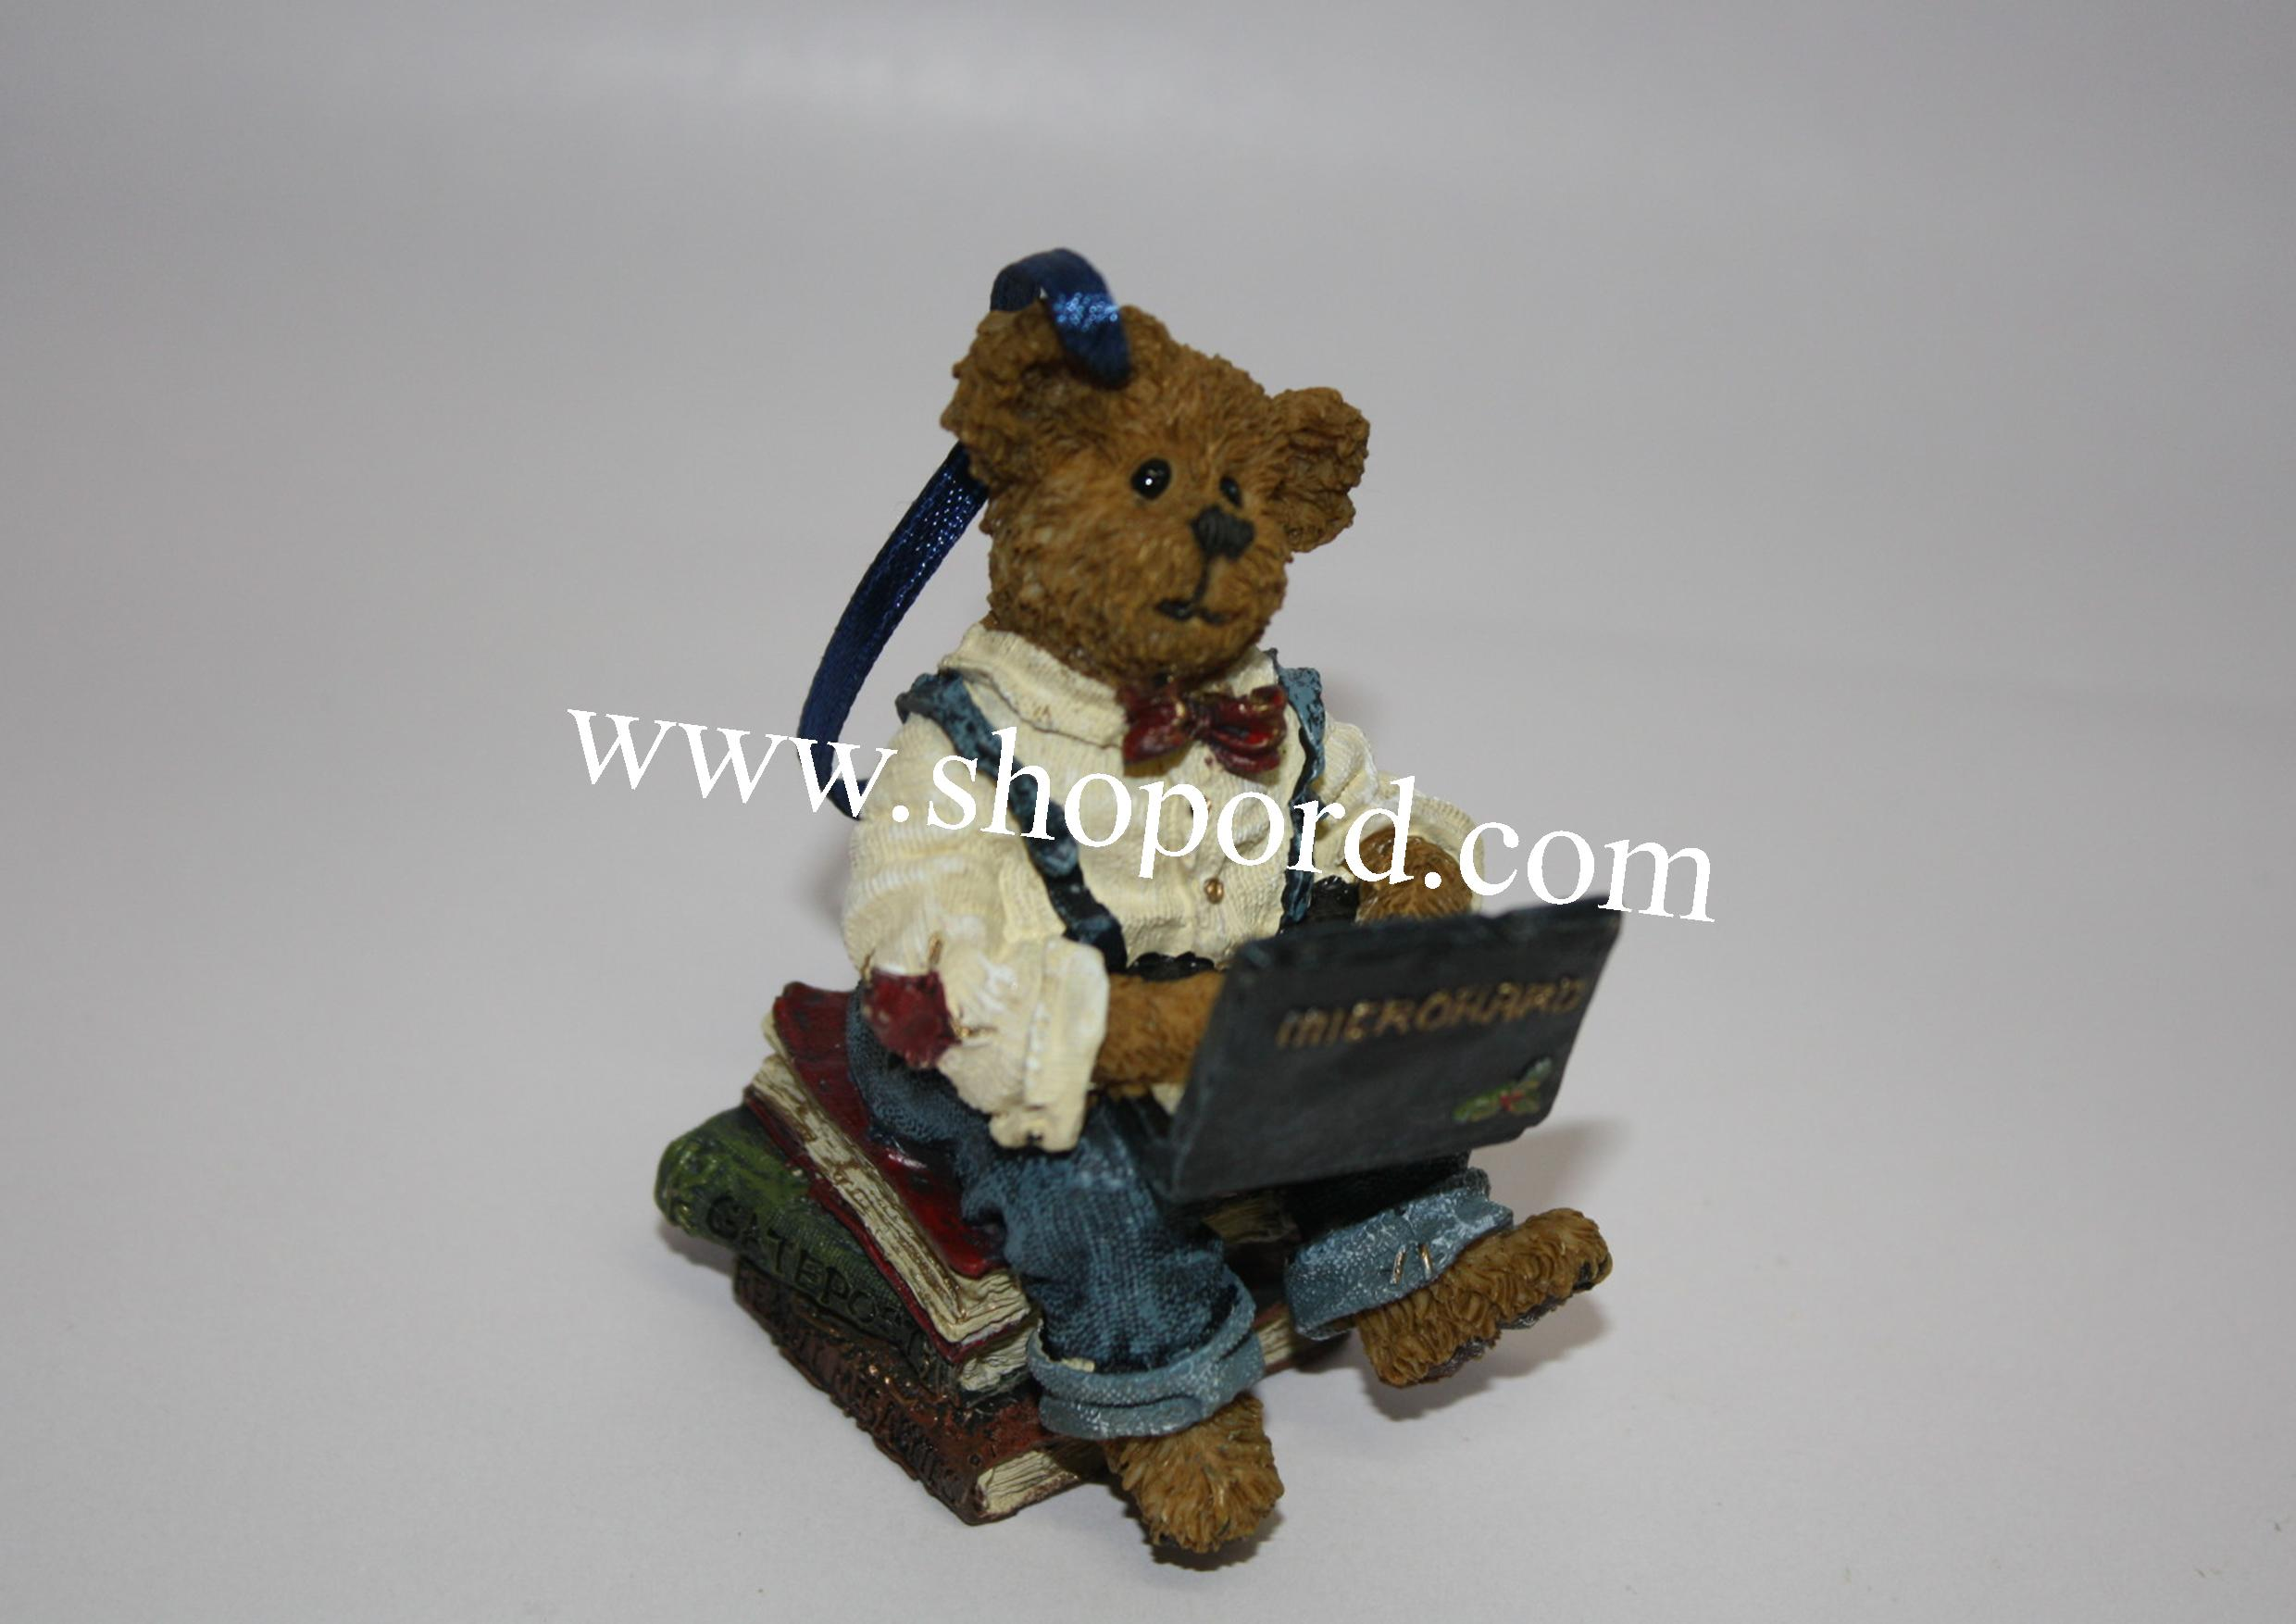 Boyds The Bearstone Collection - P.C. Browser Ornament #257007